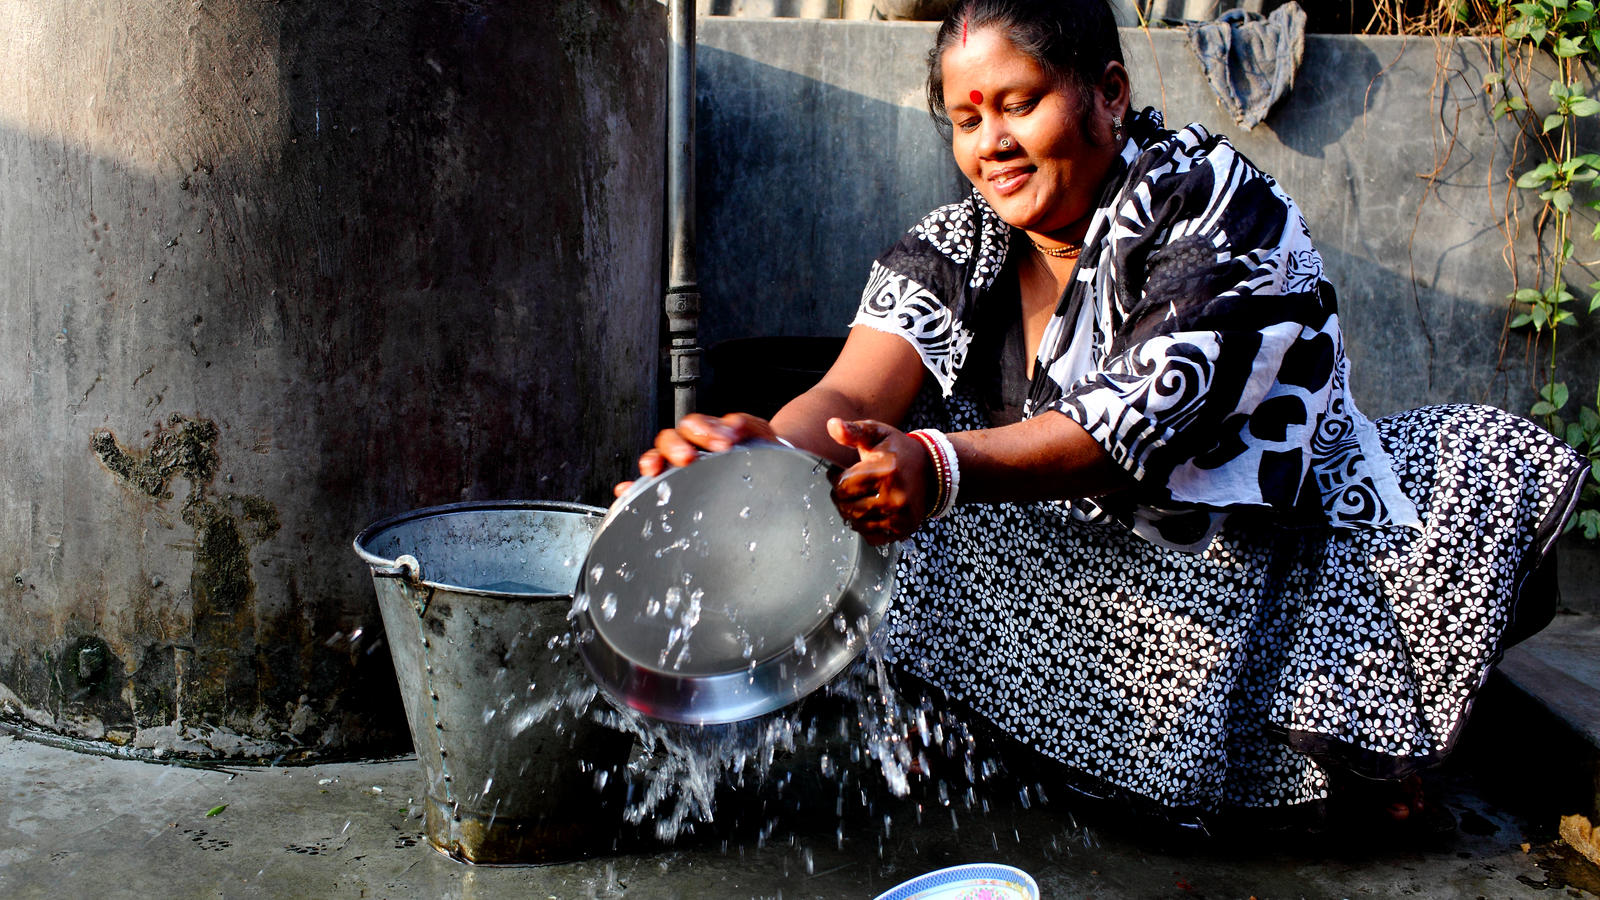 Bashona Sharkar, 40, Secretary of the Community Based Organisation, washing her dishes in clean water from the new water point in Kalshi Takar Baa slum, Dhaka, Bangladesh, 2011.